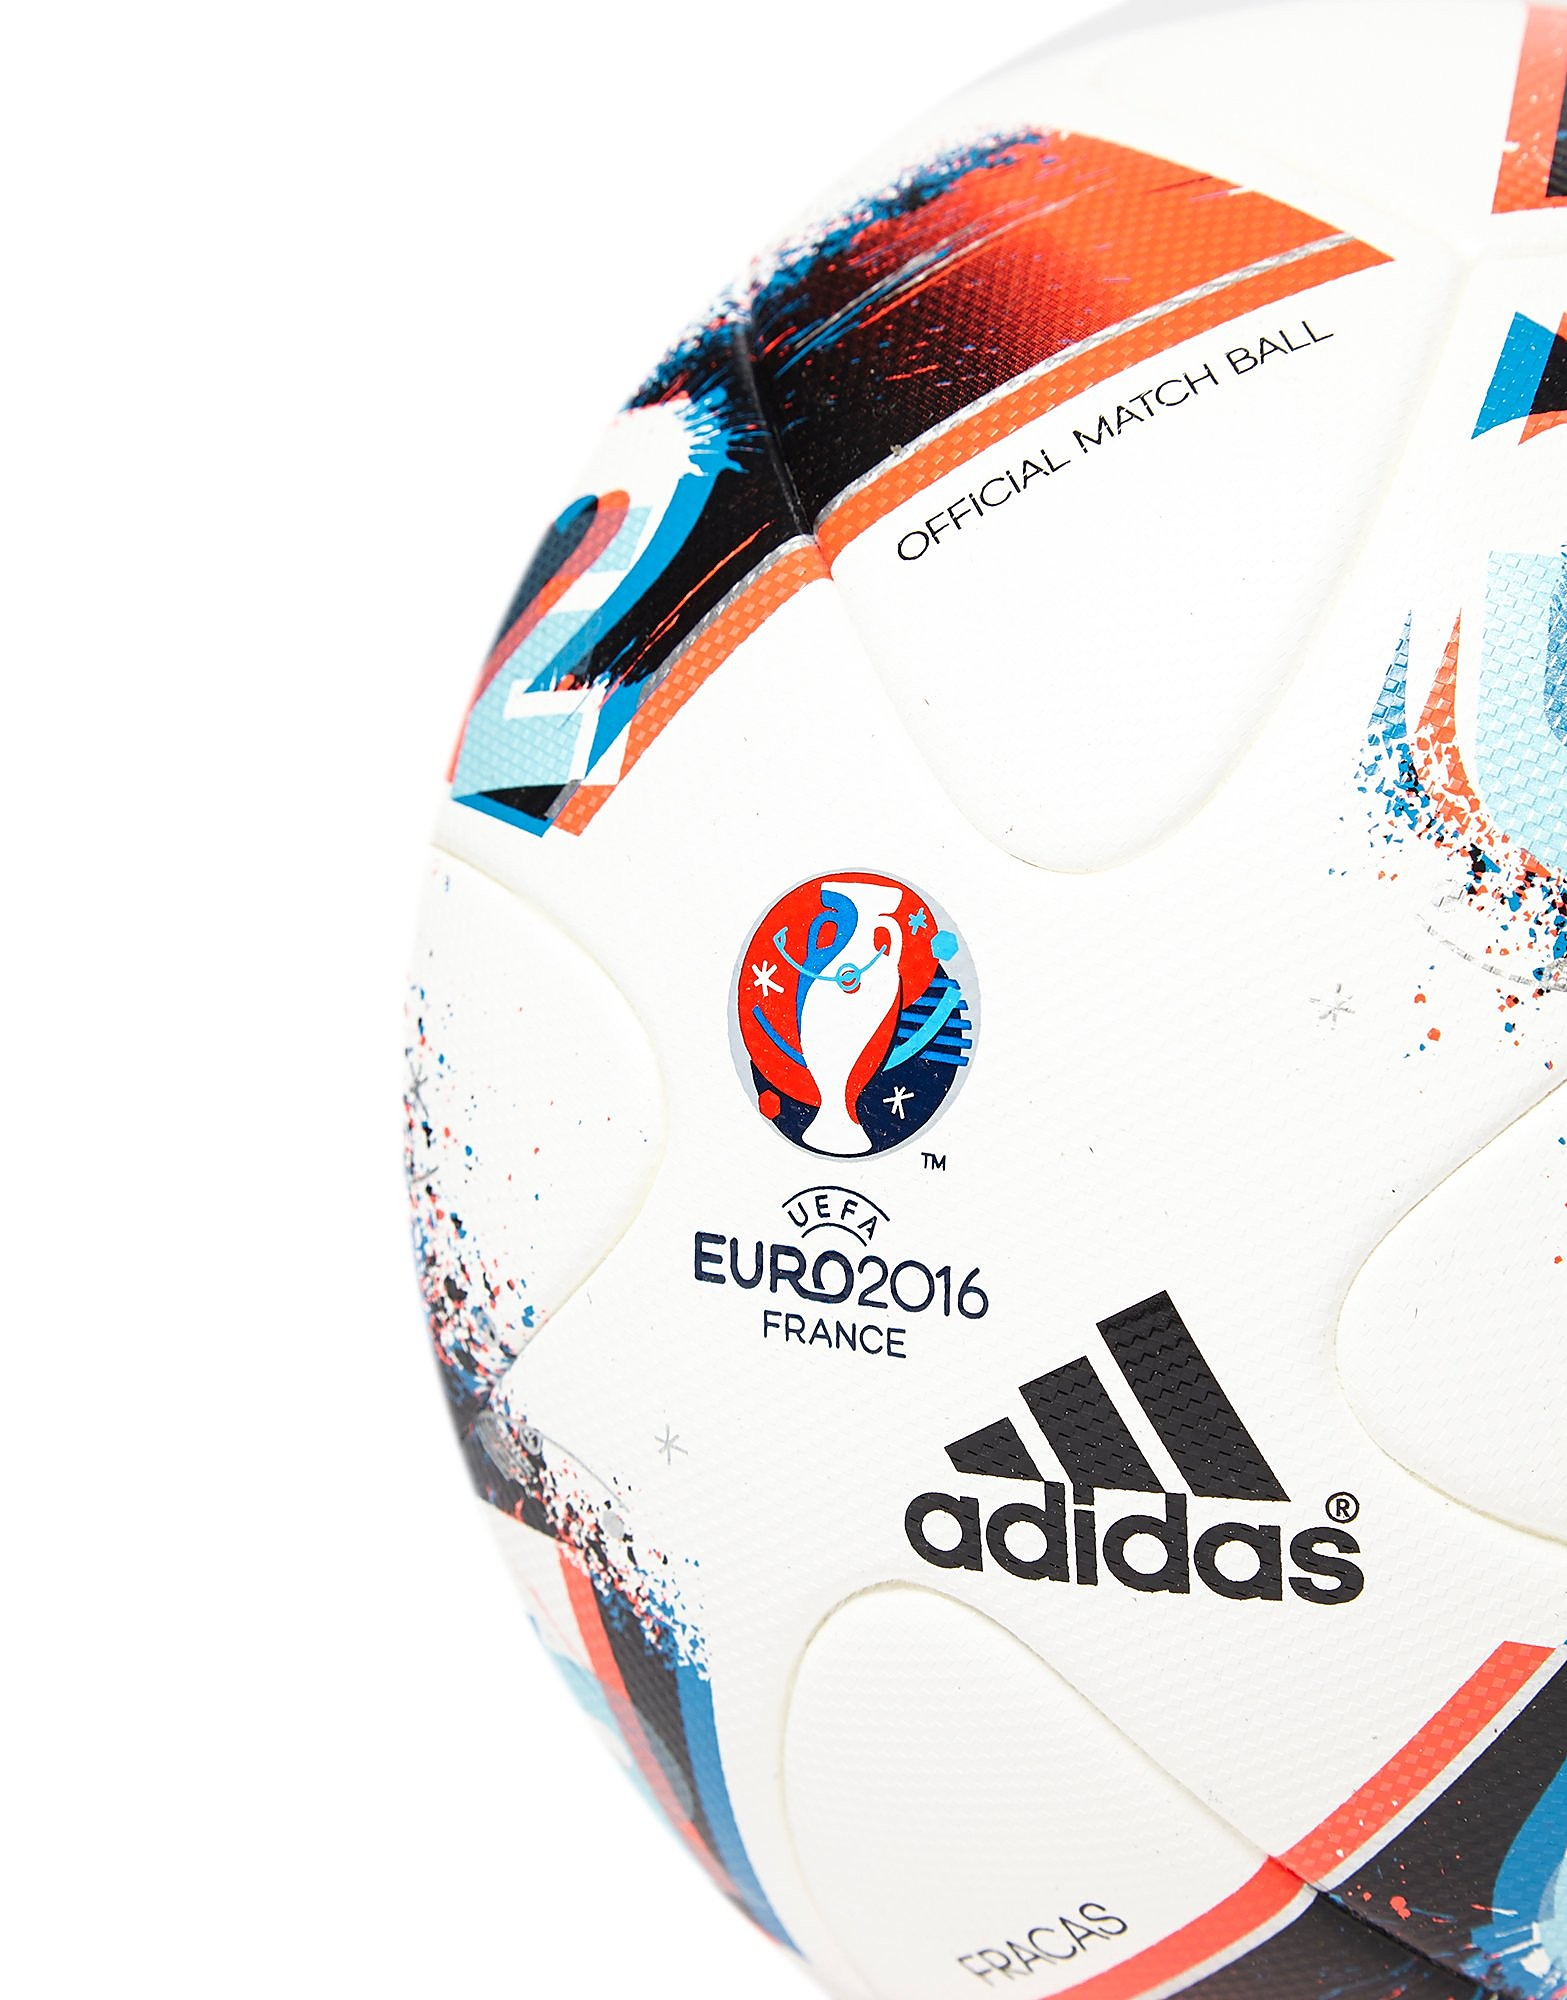 adidas Euro 2016 Final Official Match Ball